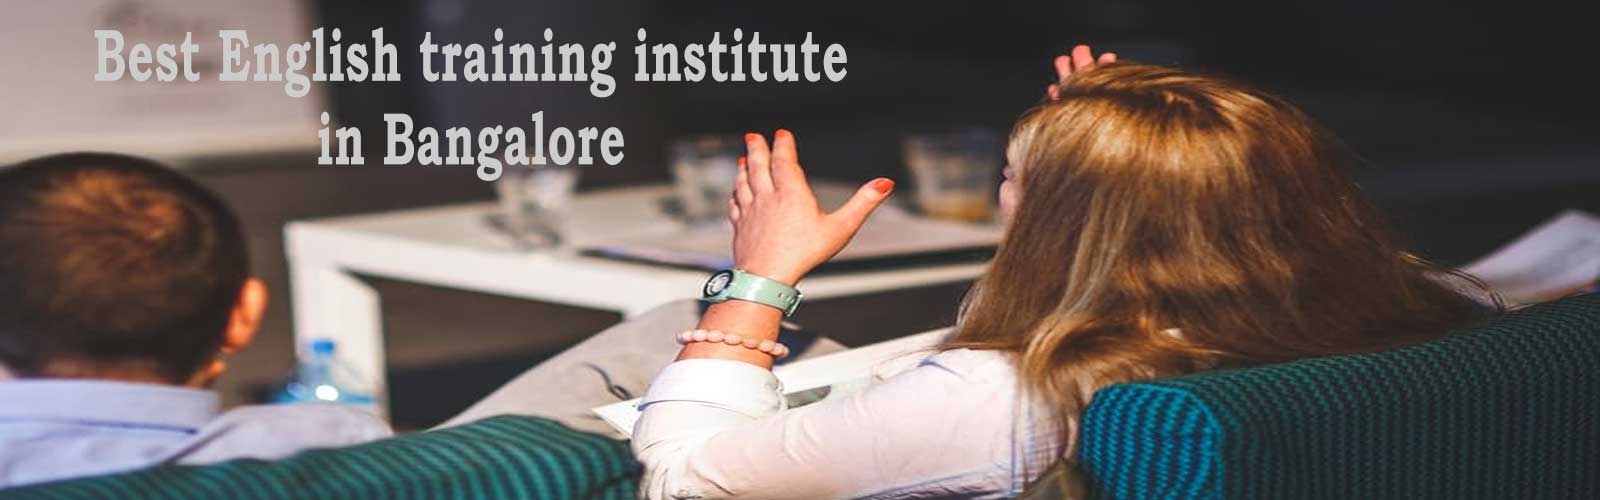 Best-English-training-institute-in-Bangalore